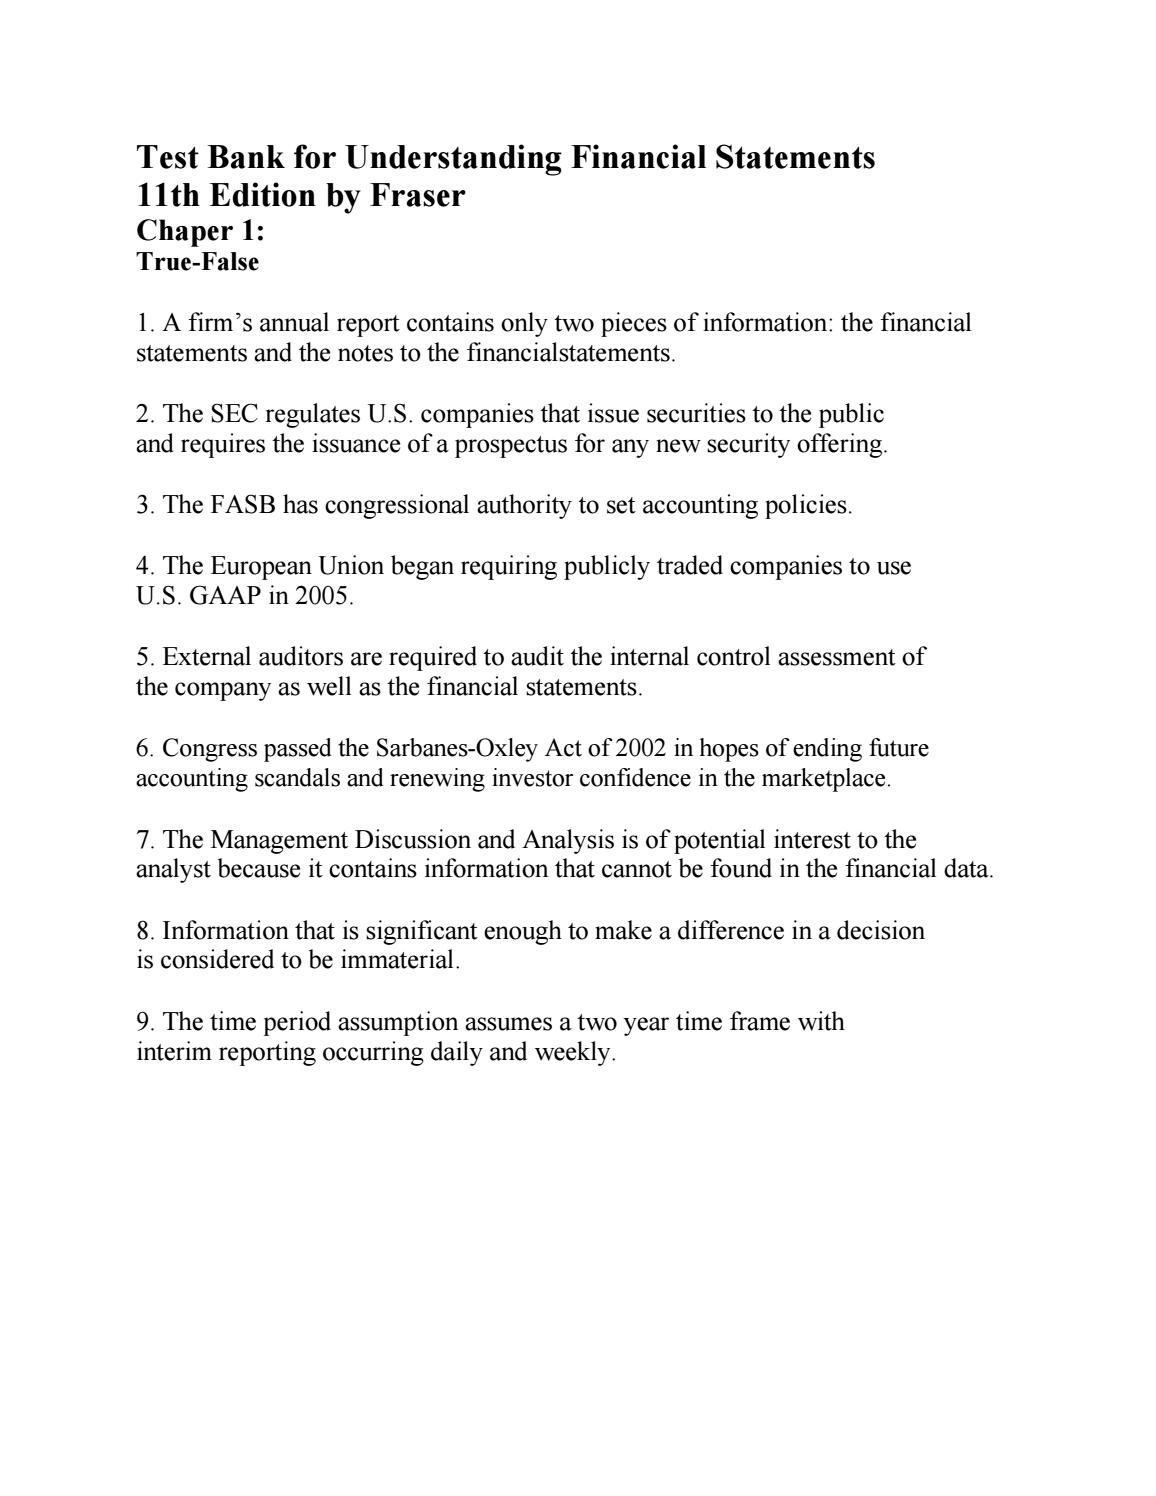 Link download test bank for understanding financial statements 11th edition  by fraser